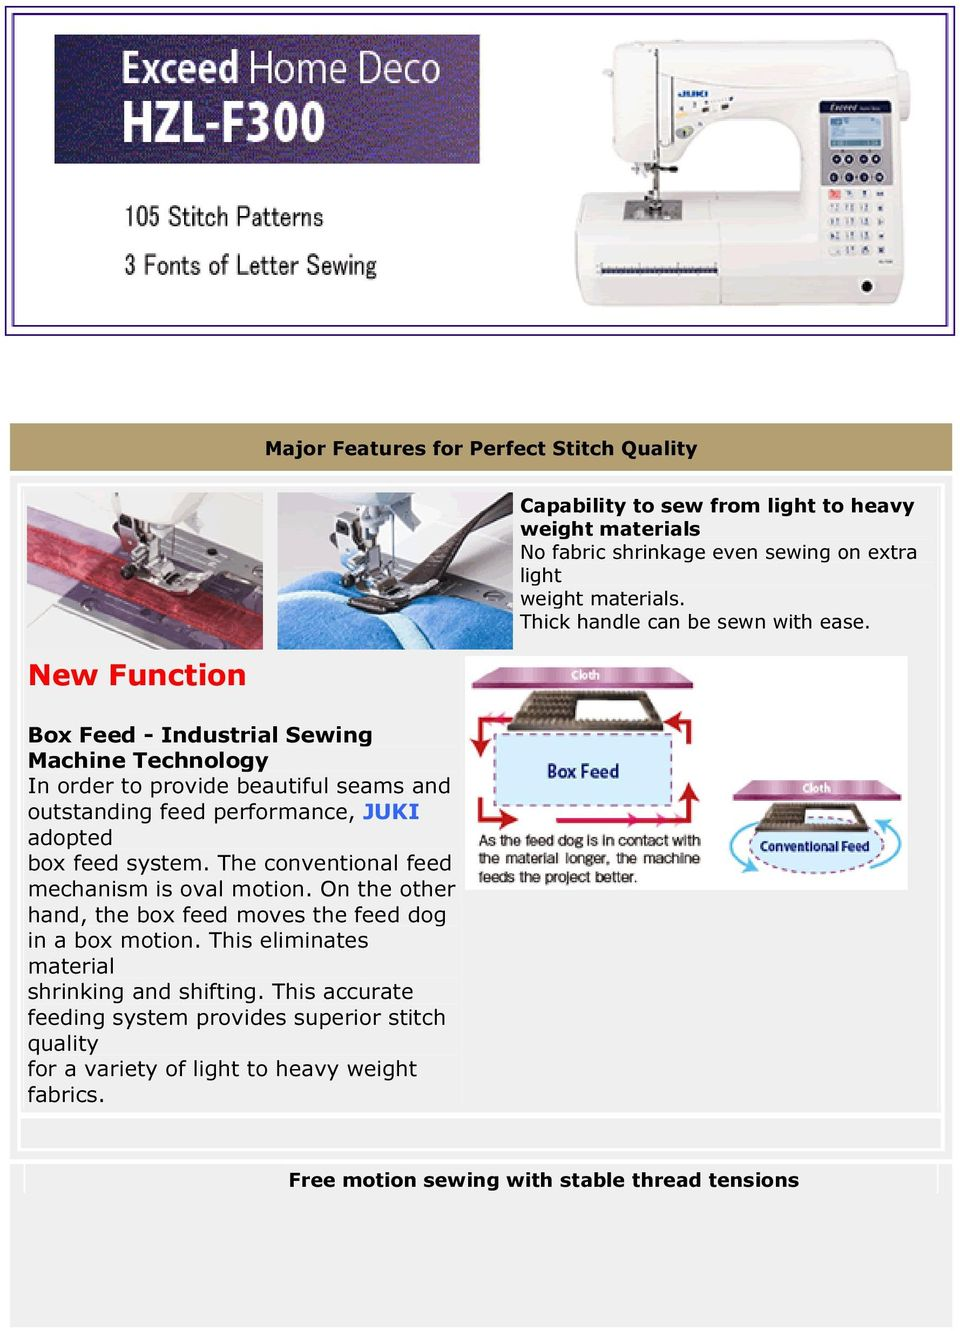 New Function Box Feed - Industrial Sewing Machine Technology In order to provide beautiful seams and outstanding feed performance, JUKI adopted box feed system.